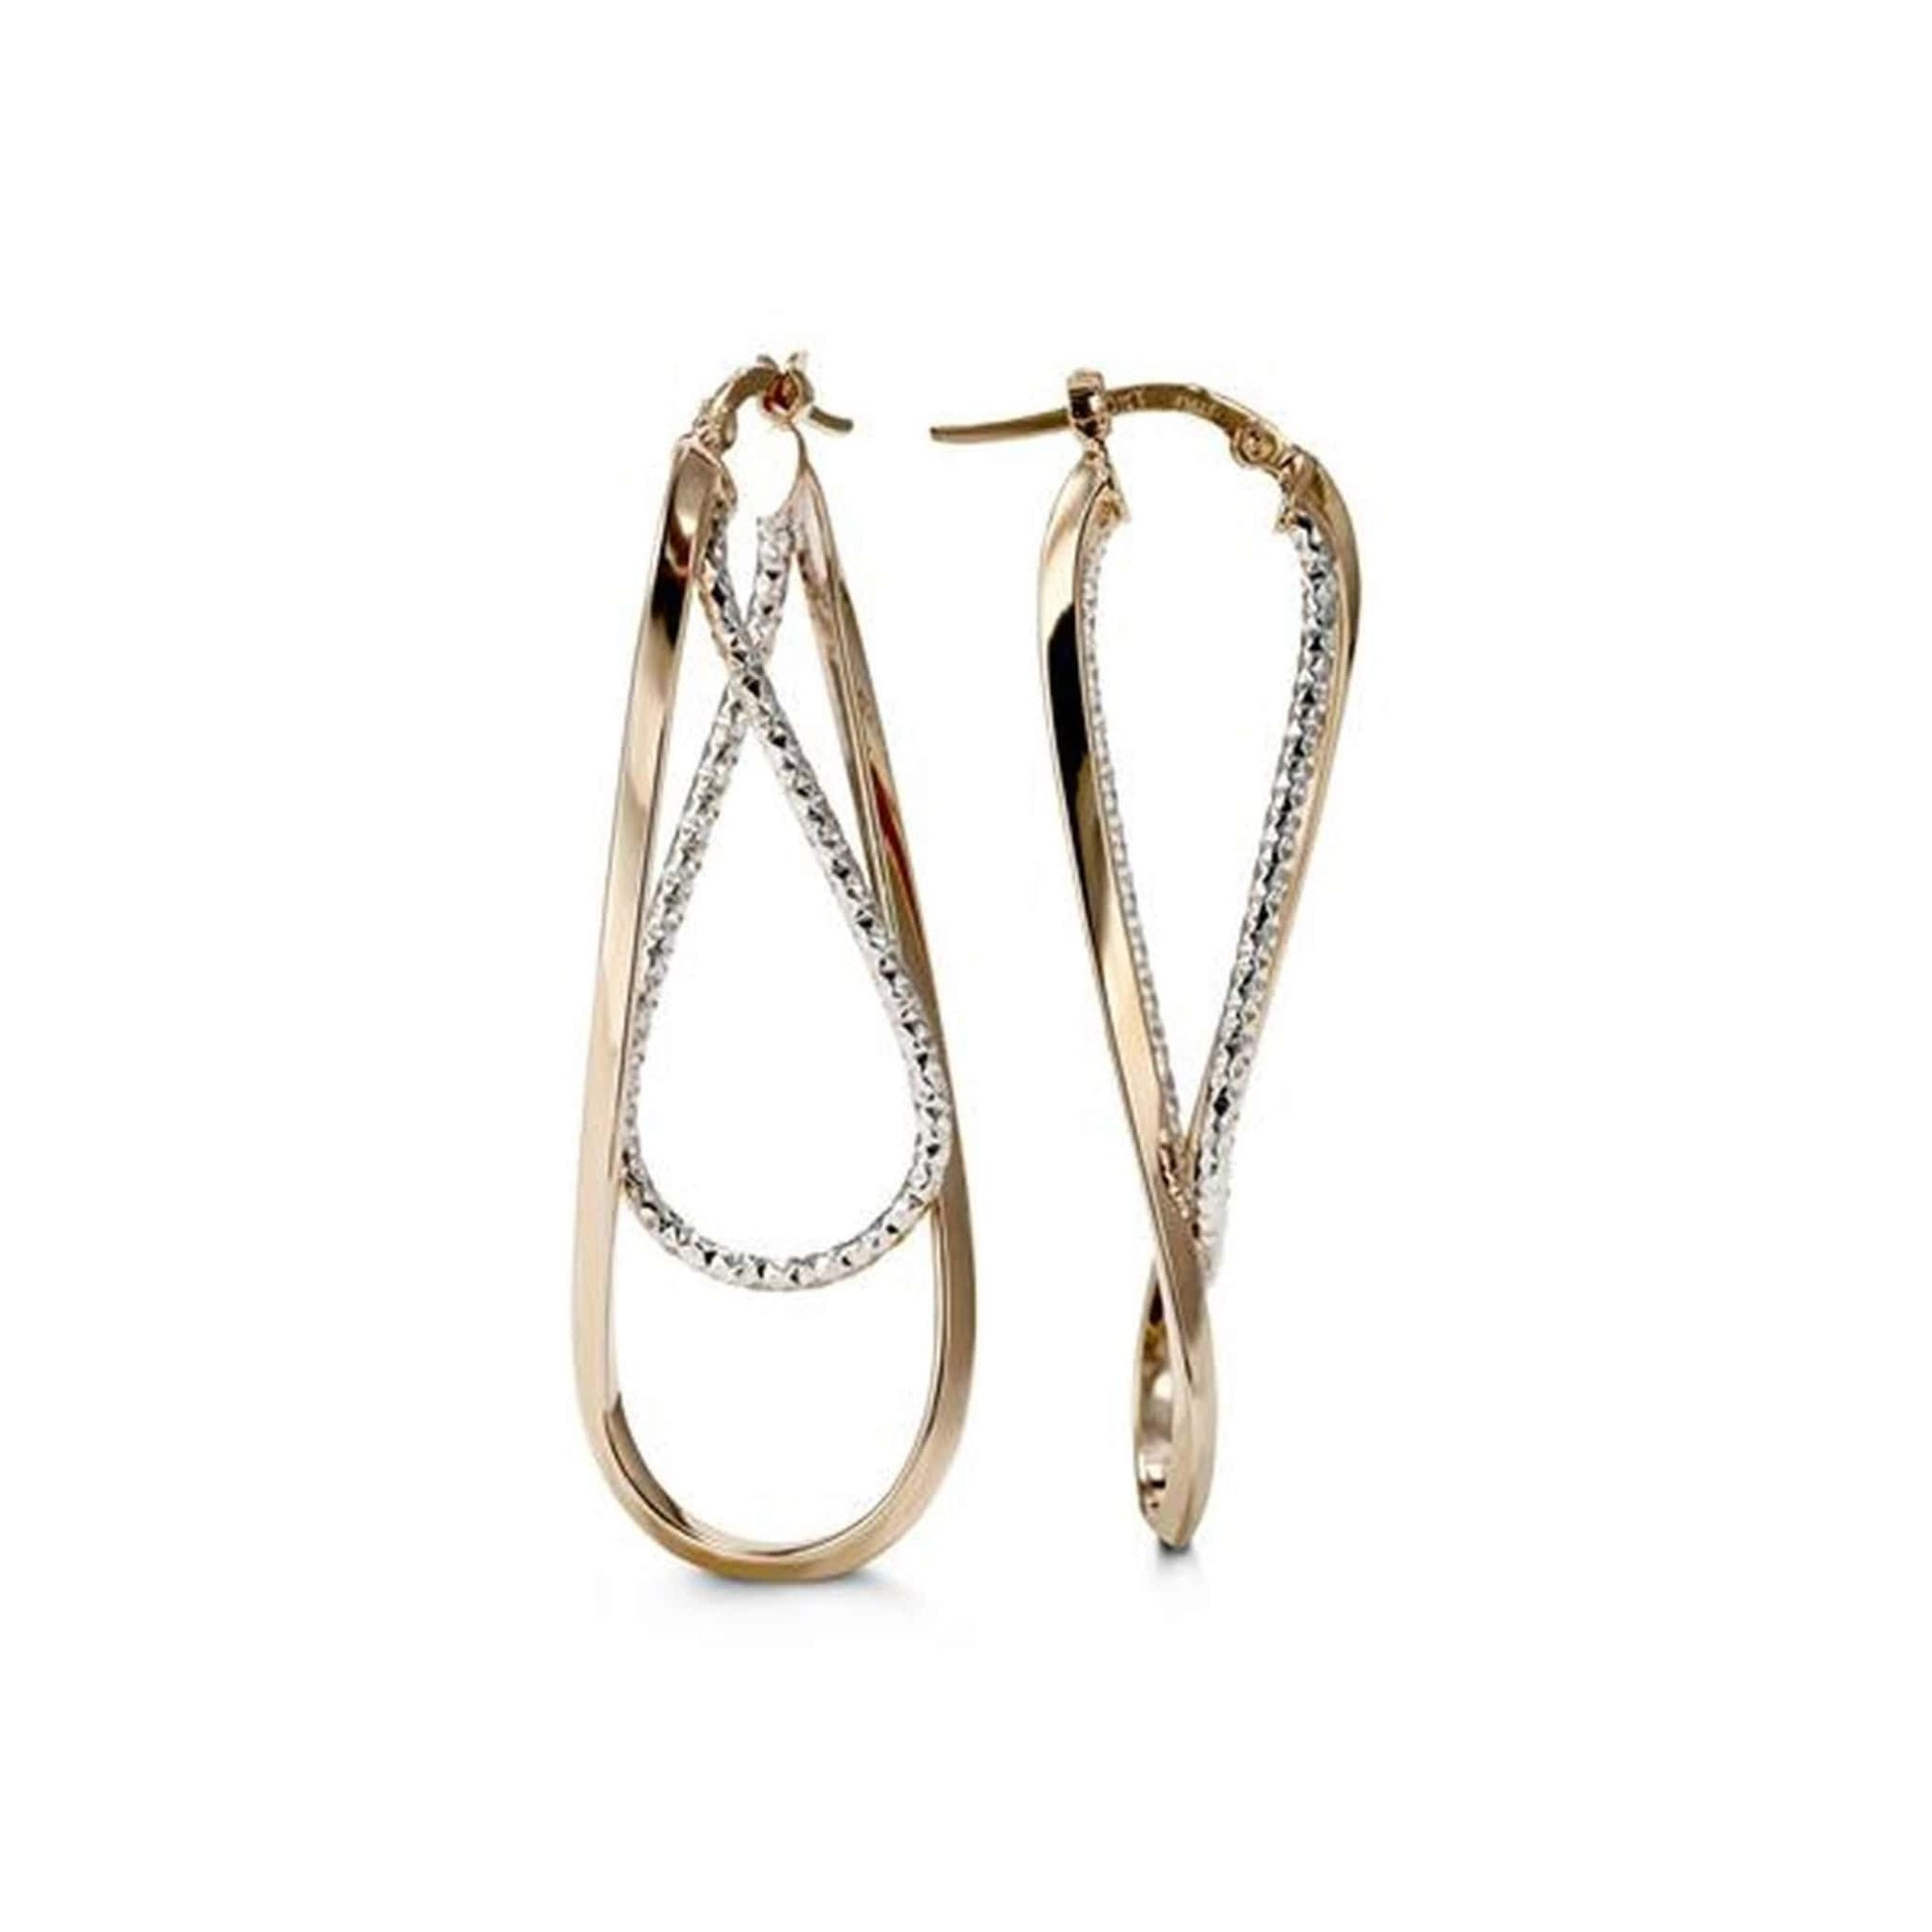 10K Two-Tone Fancy Twist Hoop Earrings at Arman's Jewellers